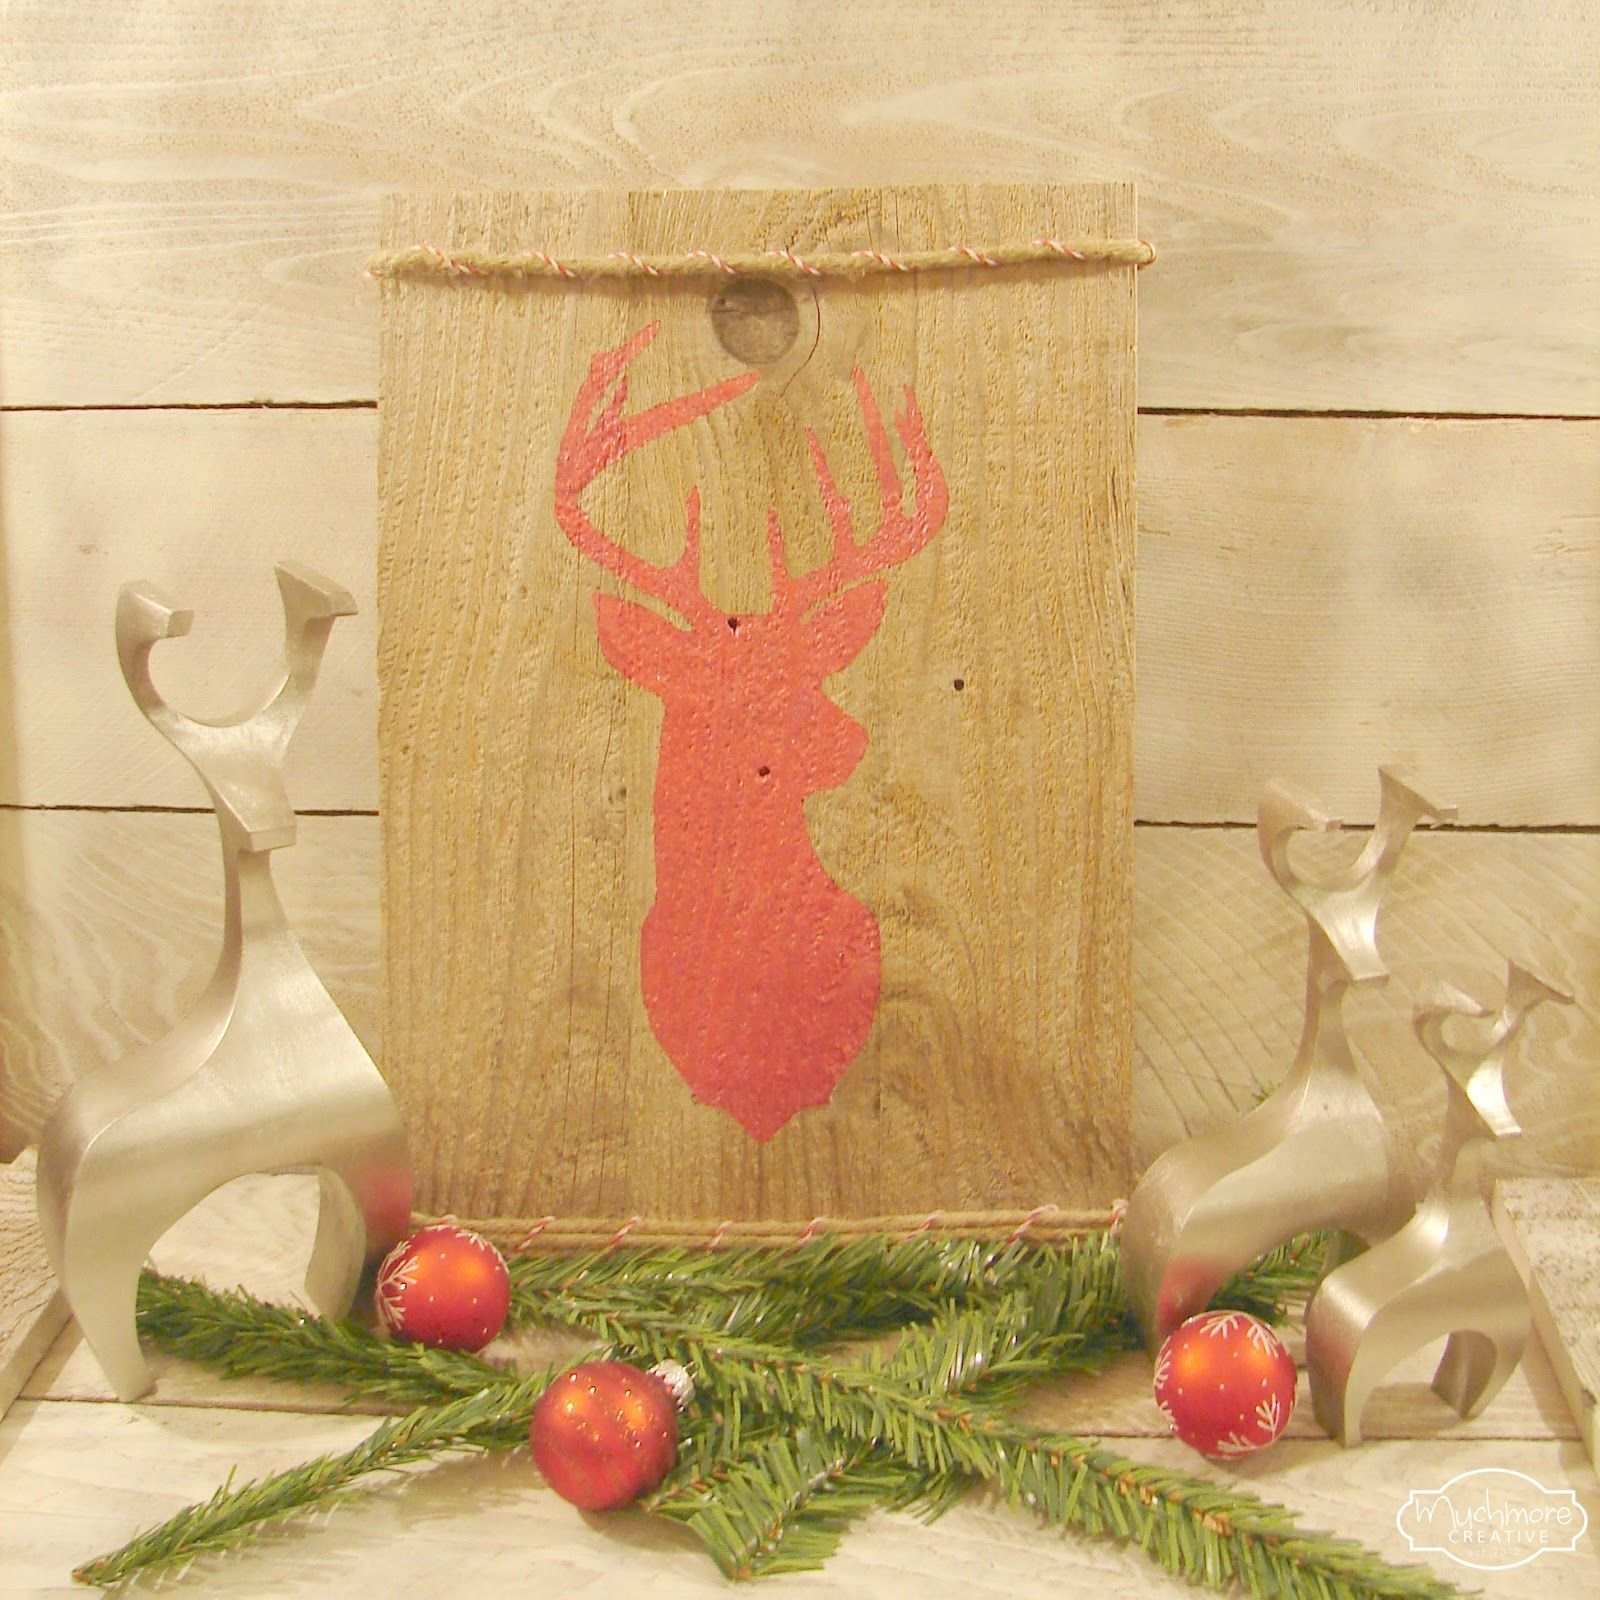 Pallet Deer Christmas projects, Crafts, Diy stocking holder